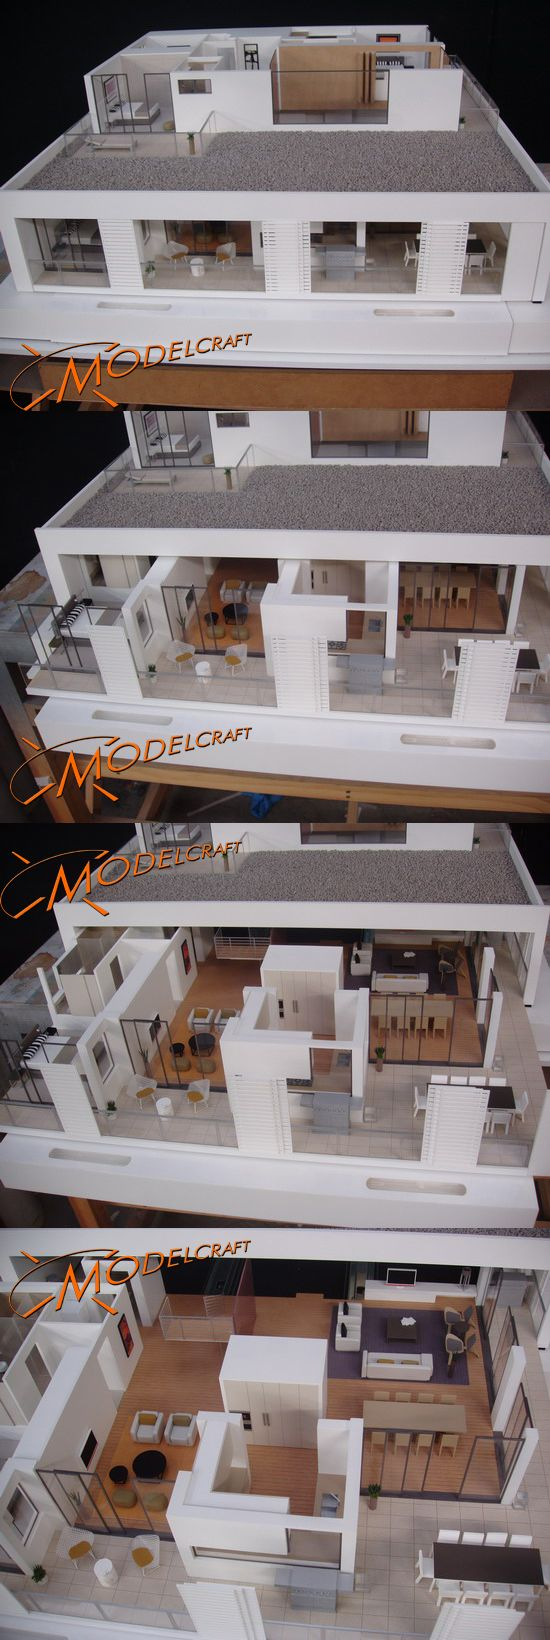 1:30 ANI Interior Apartments. Architectural Model by Modelcraft (NSW) Pty Ltd